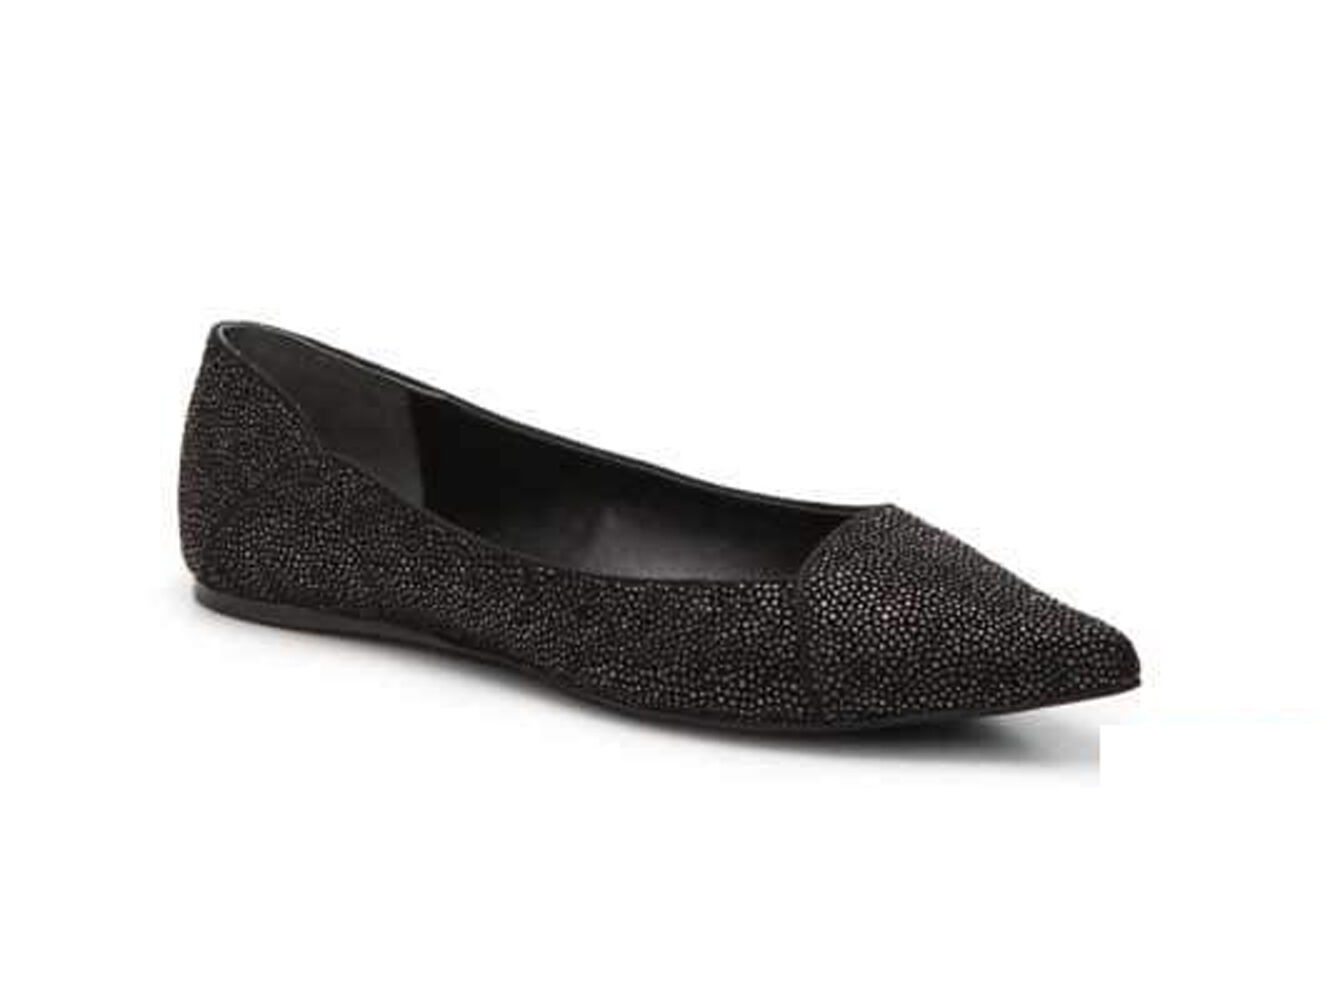 vendita scontata Adrianna Papell nero   Pewter  Boutique Kylie Kylie Kylie Ballet Flat Dimensione 8.5 MSRP   128  molte sorprese